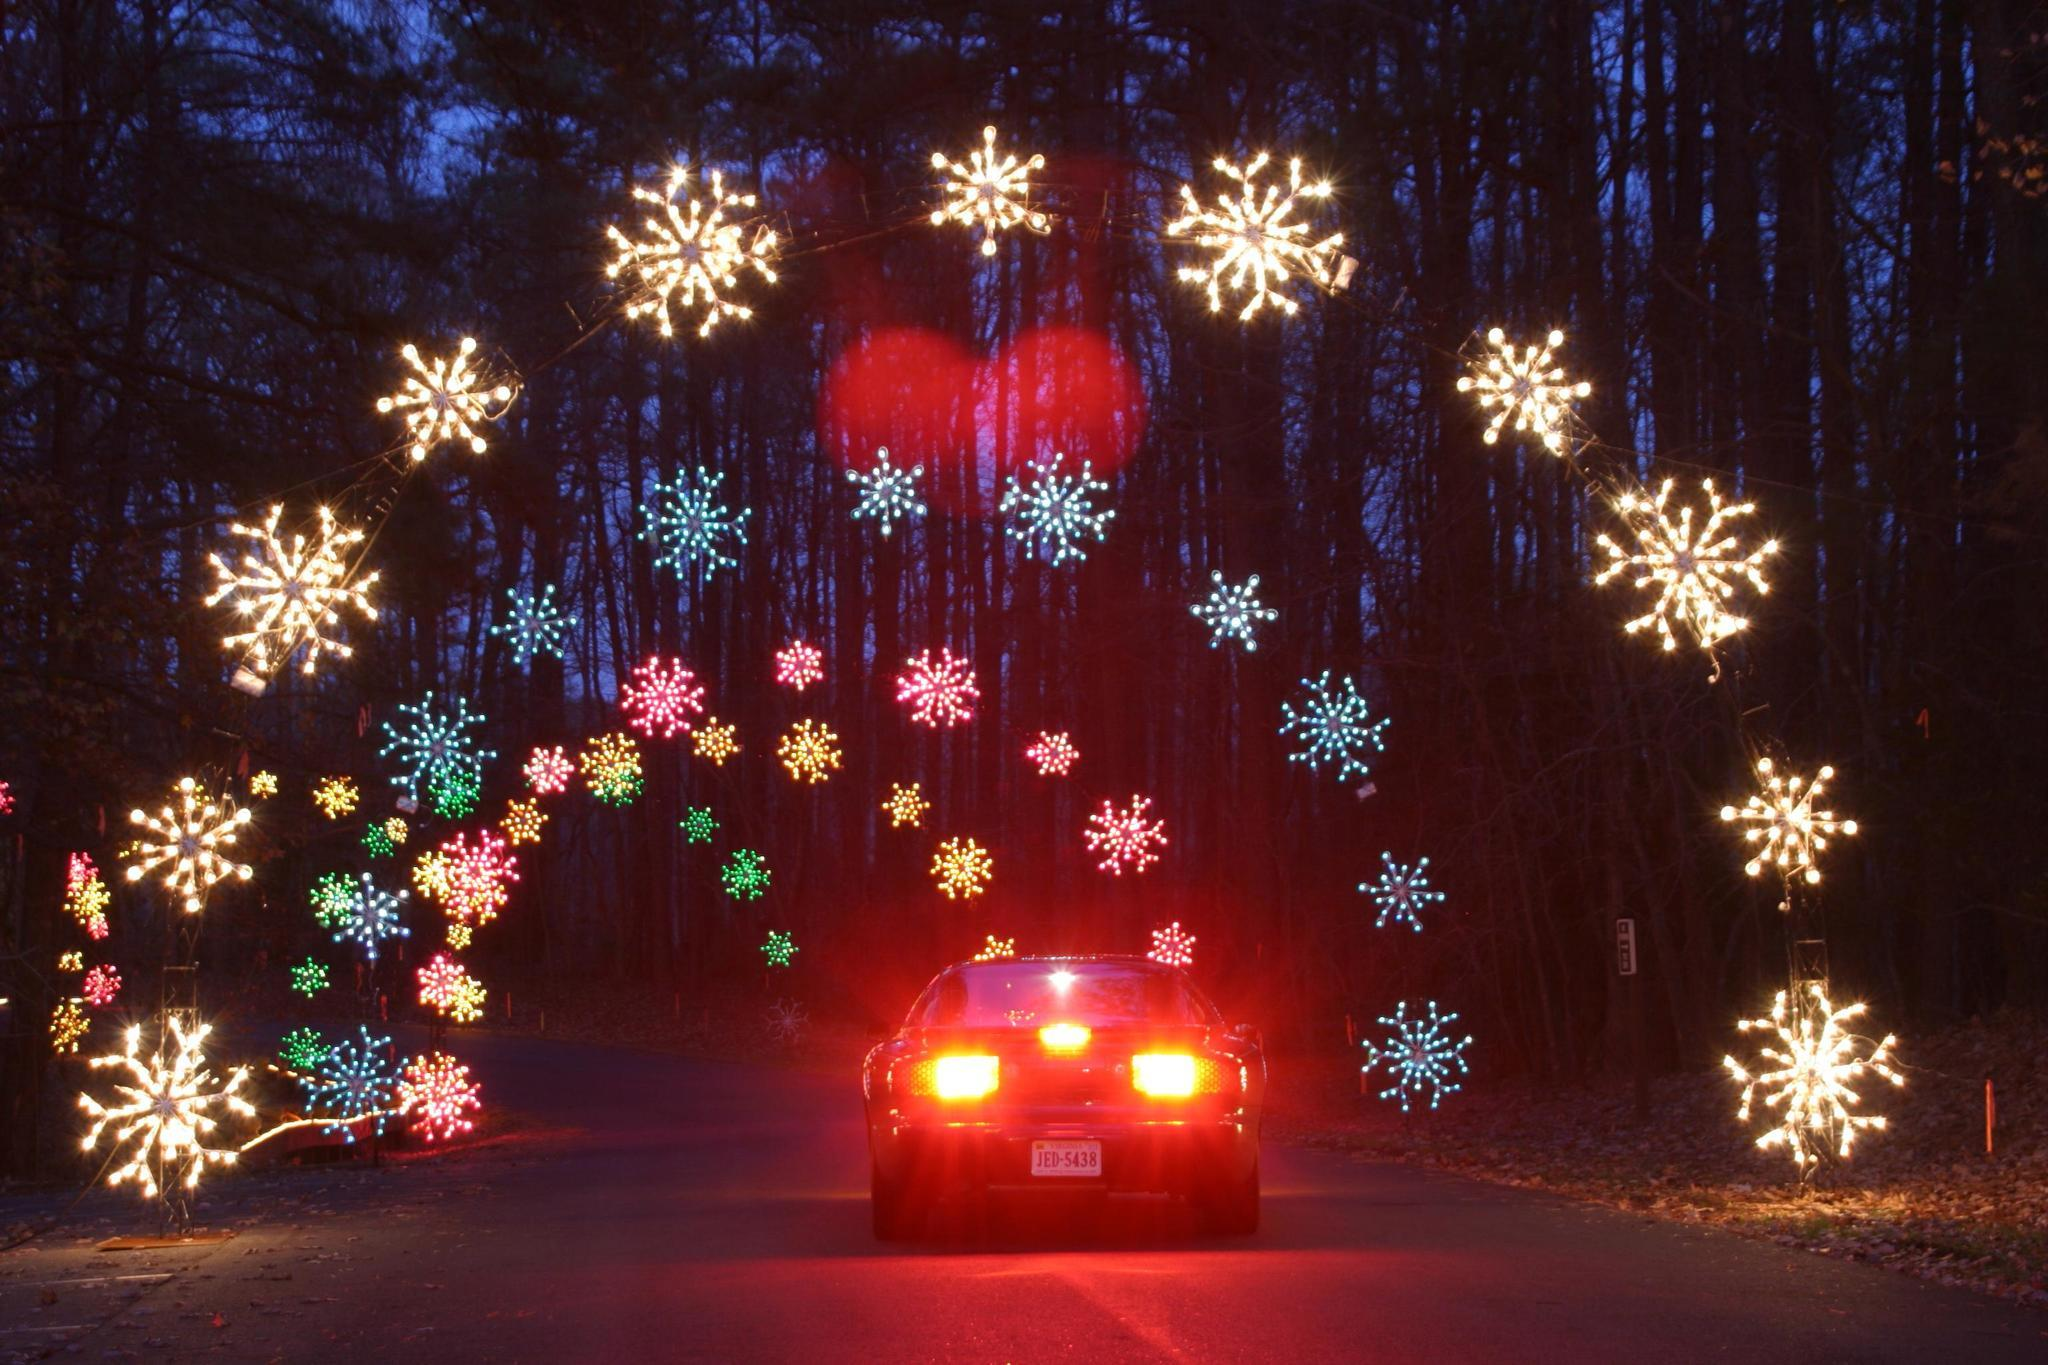 nns celebration in lights shines along 100 miles of light displays from virginia beach to richmond daily press